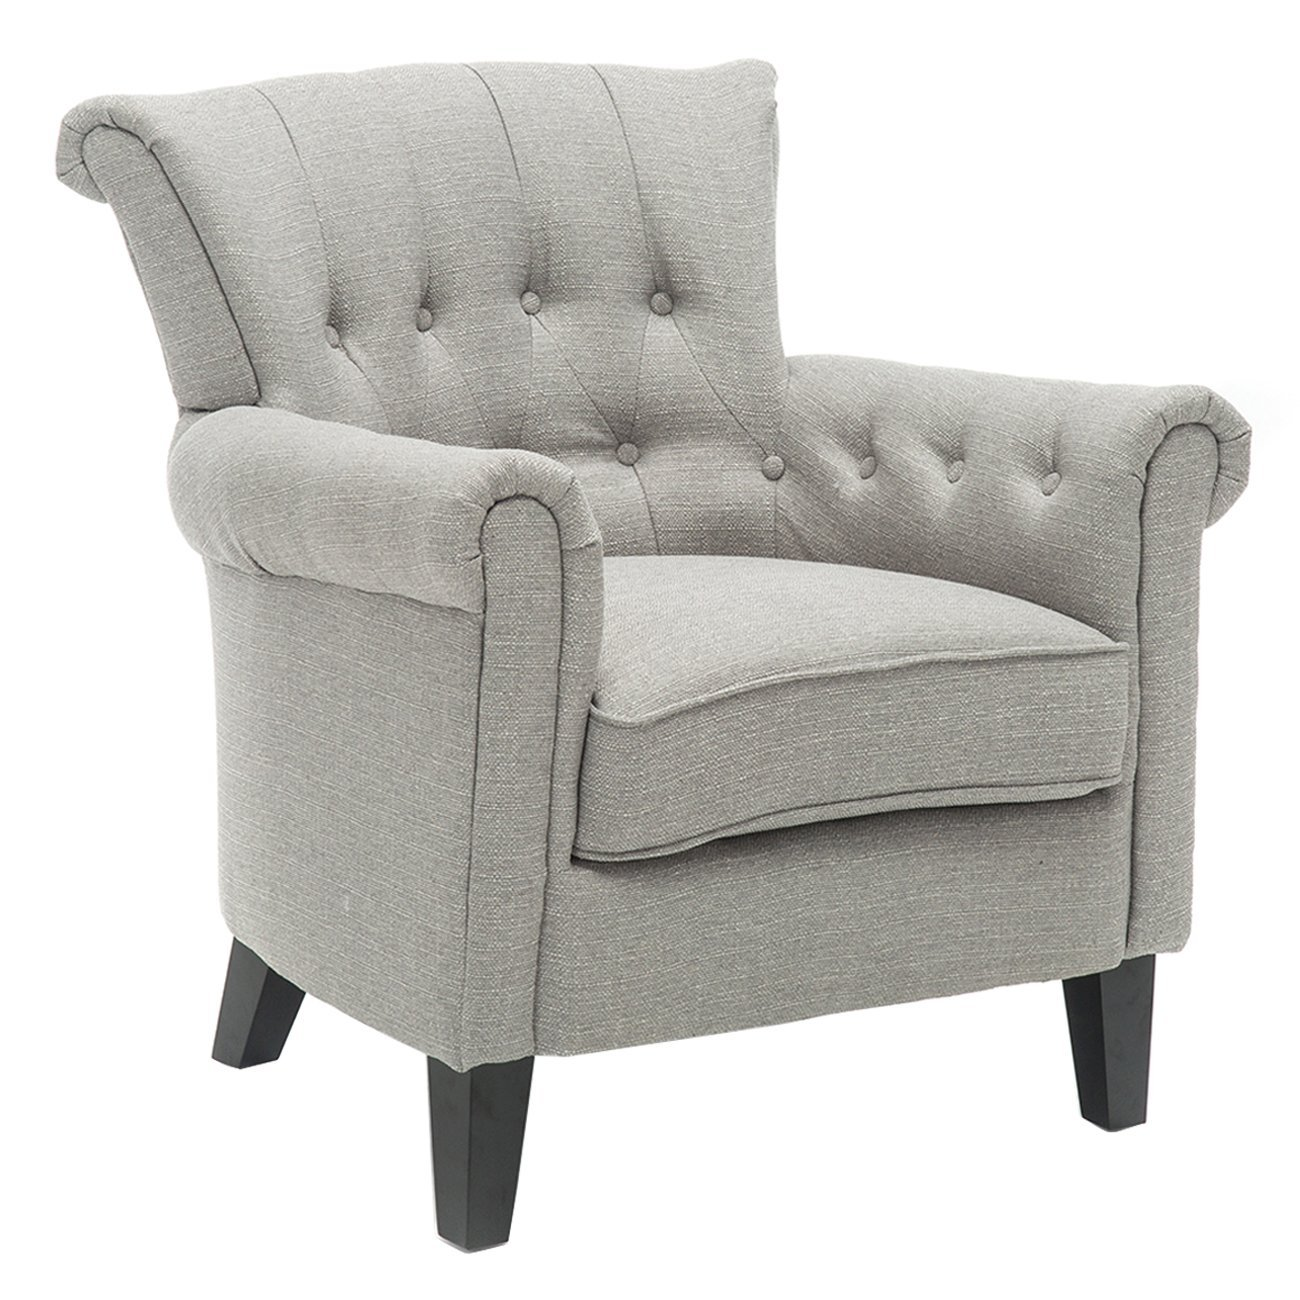 BONZY Accent Chair Tufted Flared Armchair Gray by BONZY